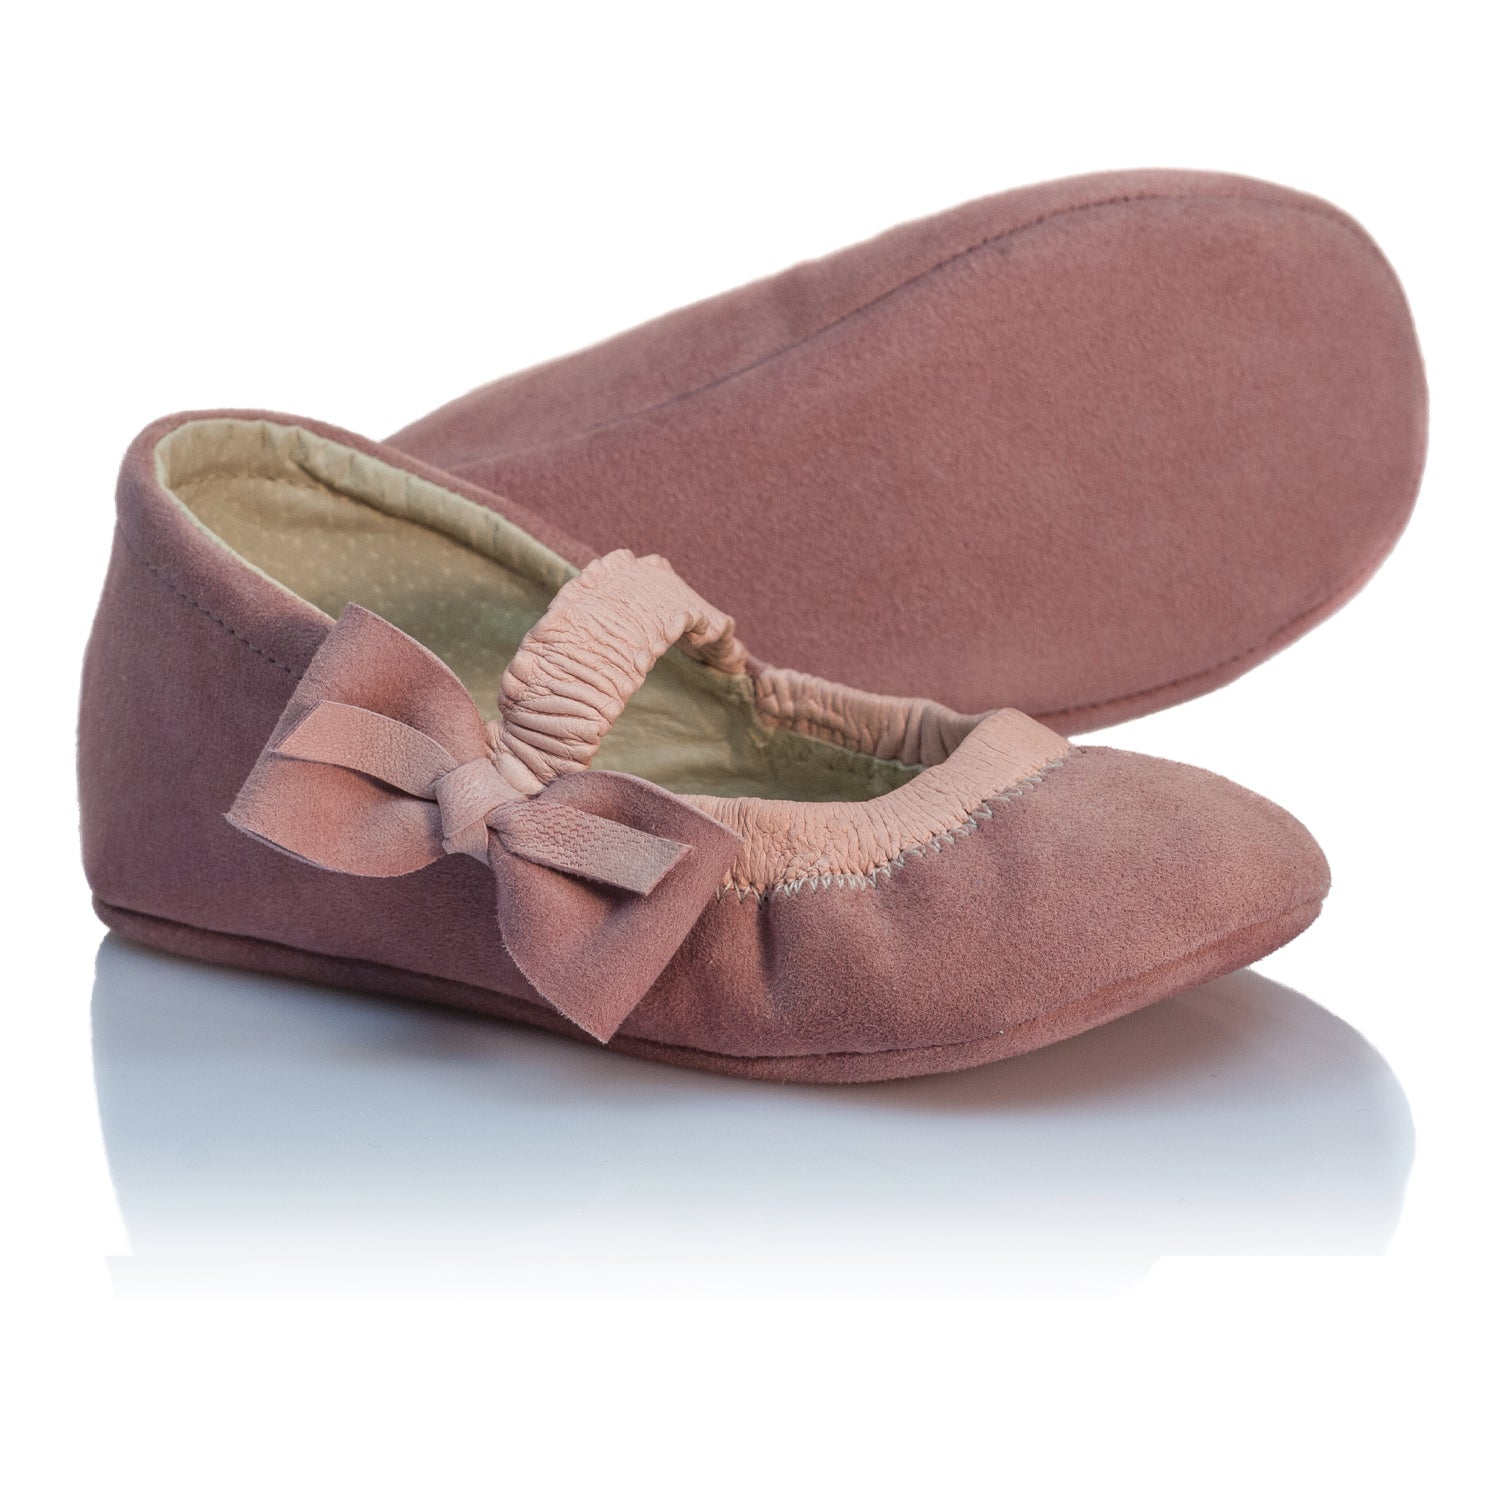 Vibys Barefoot Ballerina Shoes - Kiki Ballerina - sole view